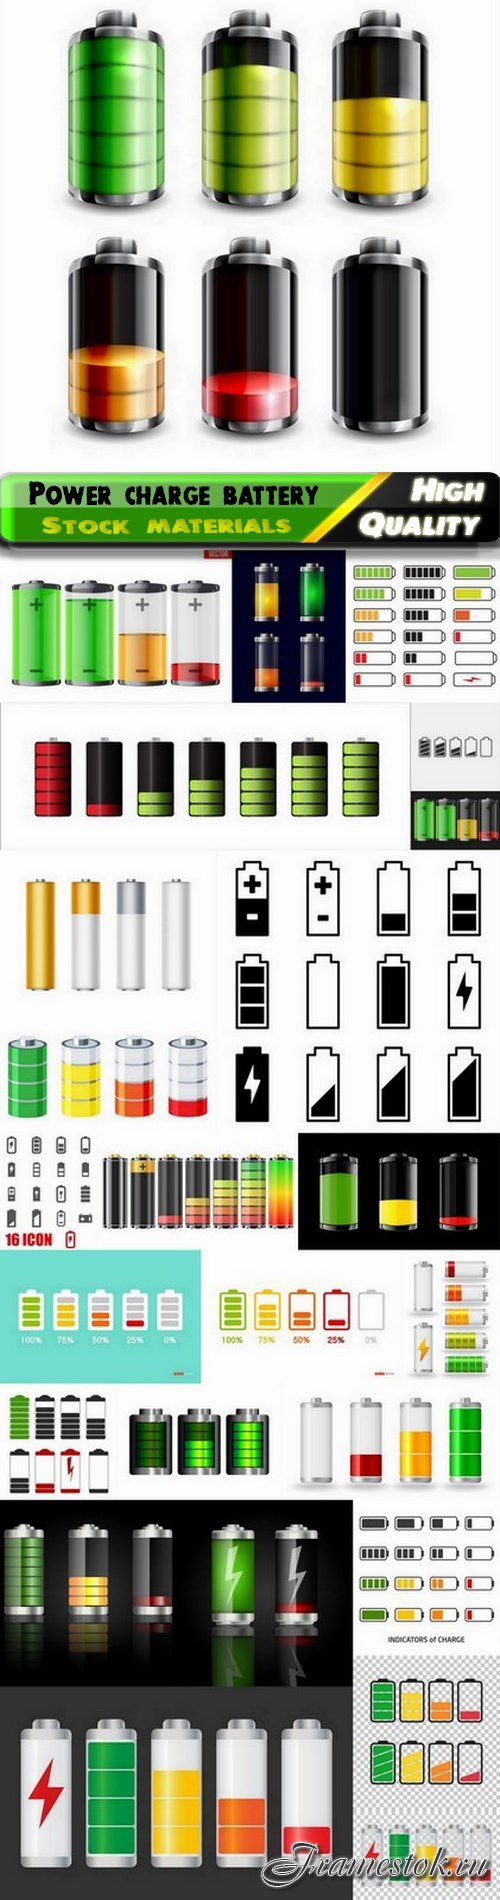 Power charge battery icon for application interface design 25 Eps